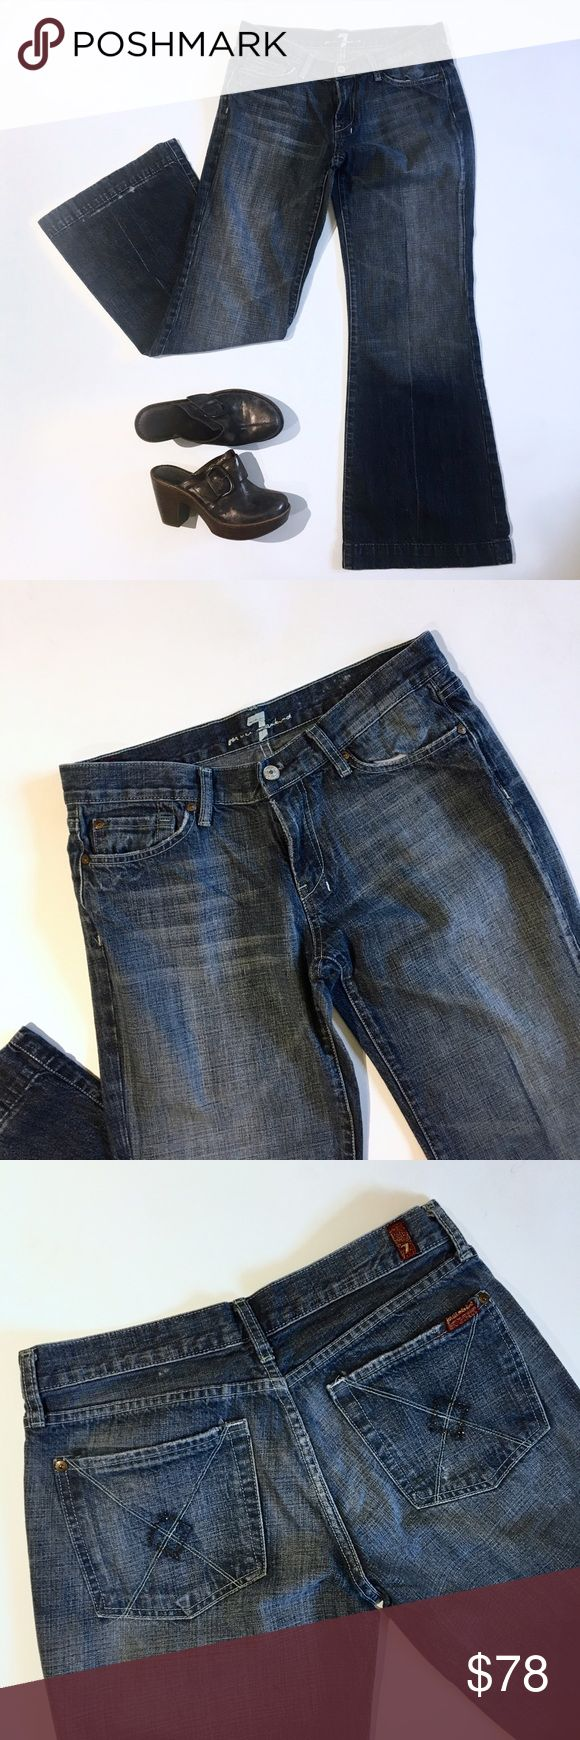 """7 FAM Dojo wide leg trouser jeans 7 for all mankind dojo wife leg trouser jeans with black Swarovski crystals on pocket. Inseam is 30/31"""" approx. leg opening is 23"""" wide. Great used condition except for some wear above hem where the jeans were worn folded.  u115019u-019u.   Add this to a bundle to save 15%. For jewelry pictured, visit my profile for a link to shop. 7 For All Mankind Jeans Flare & Wide Leg"""